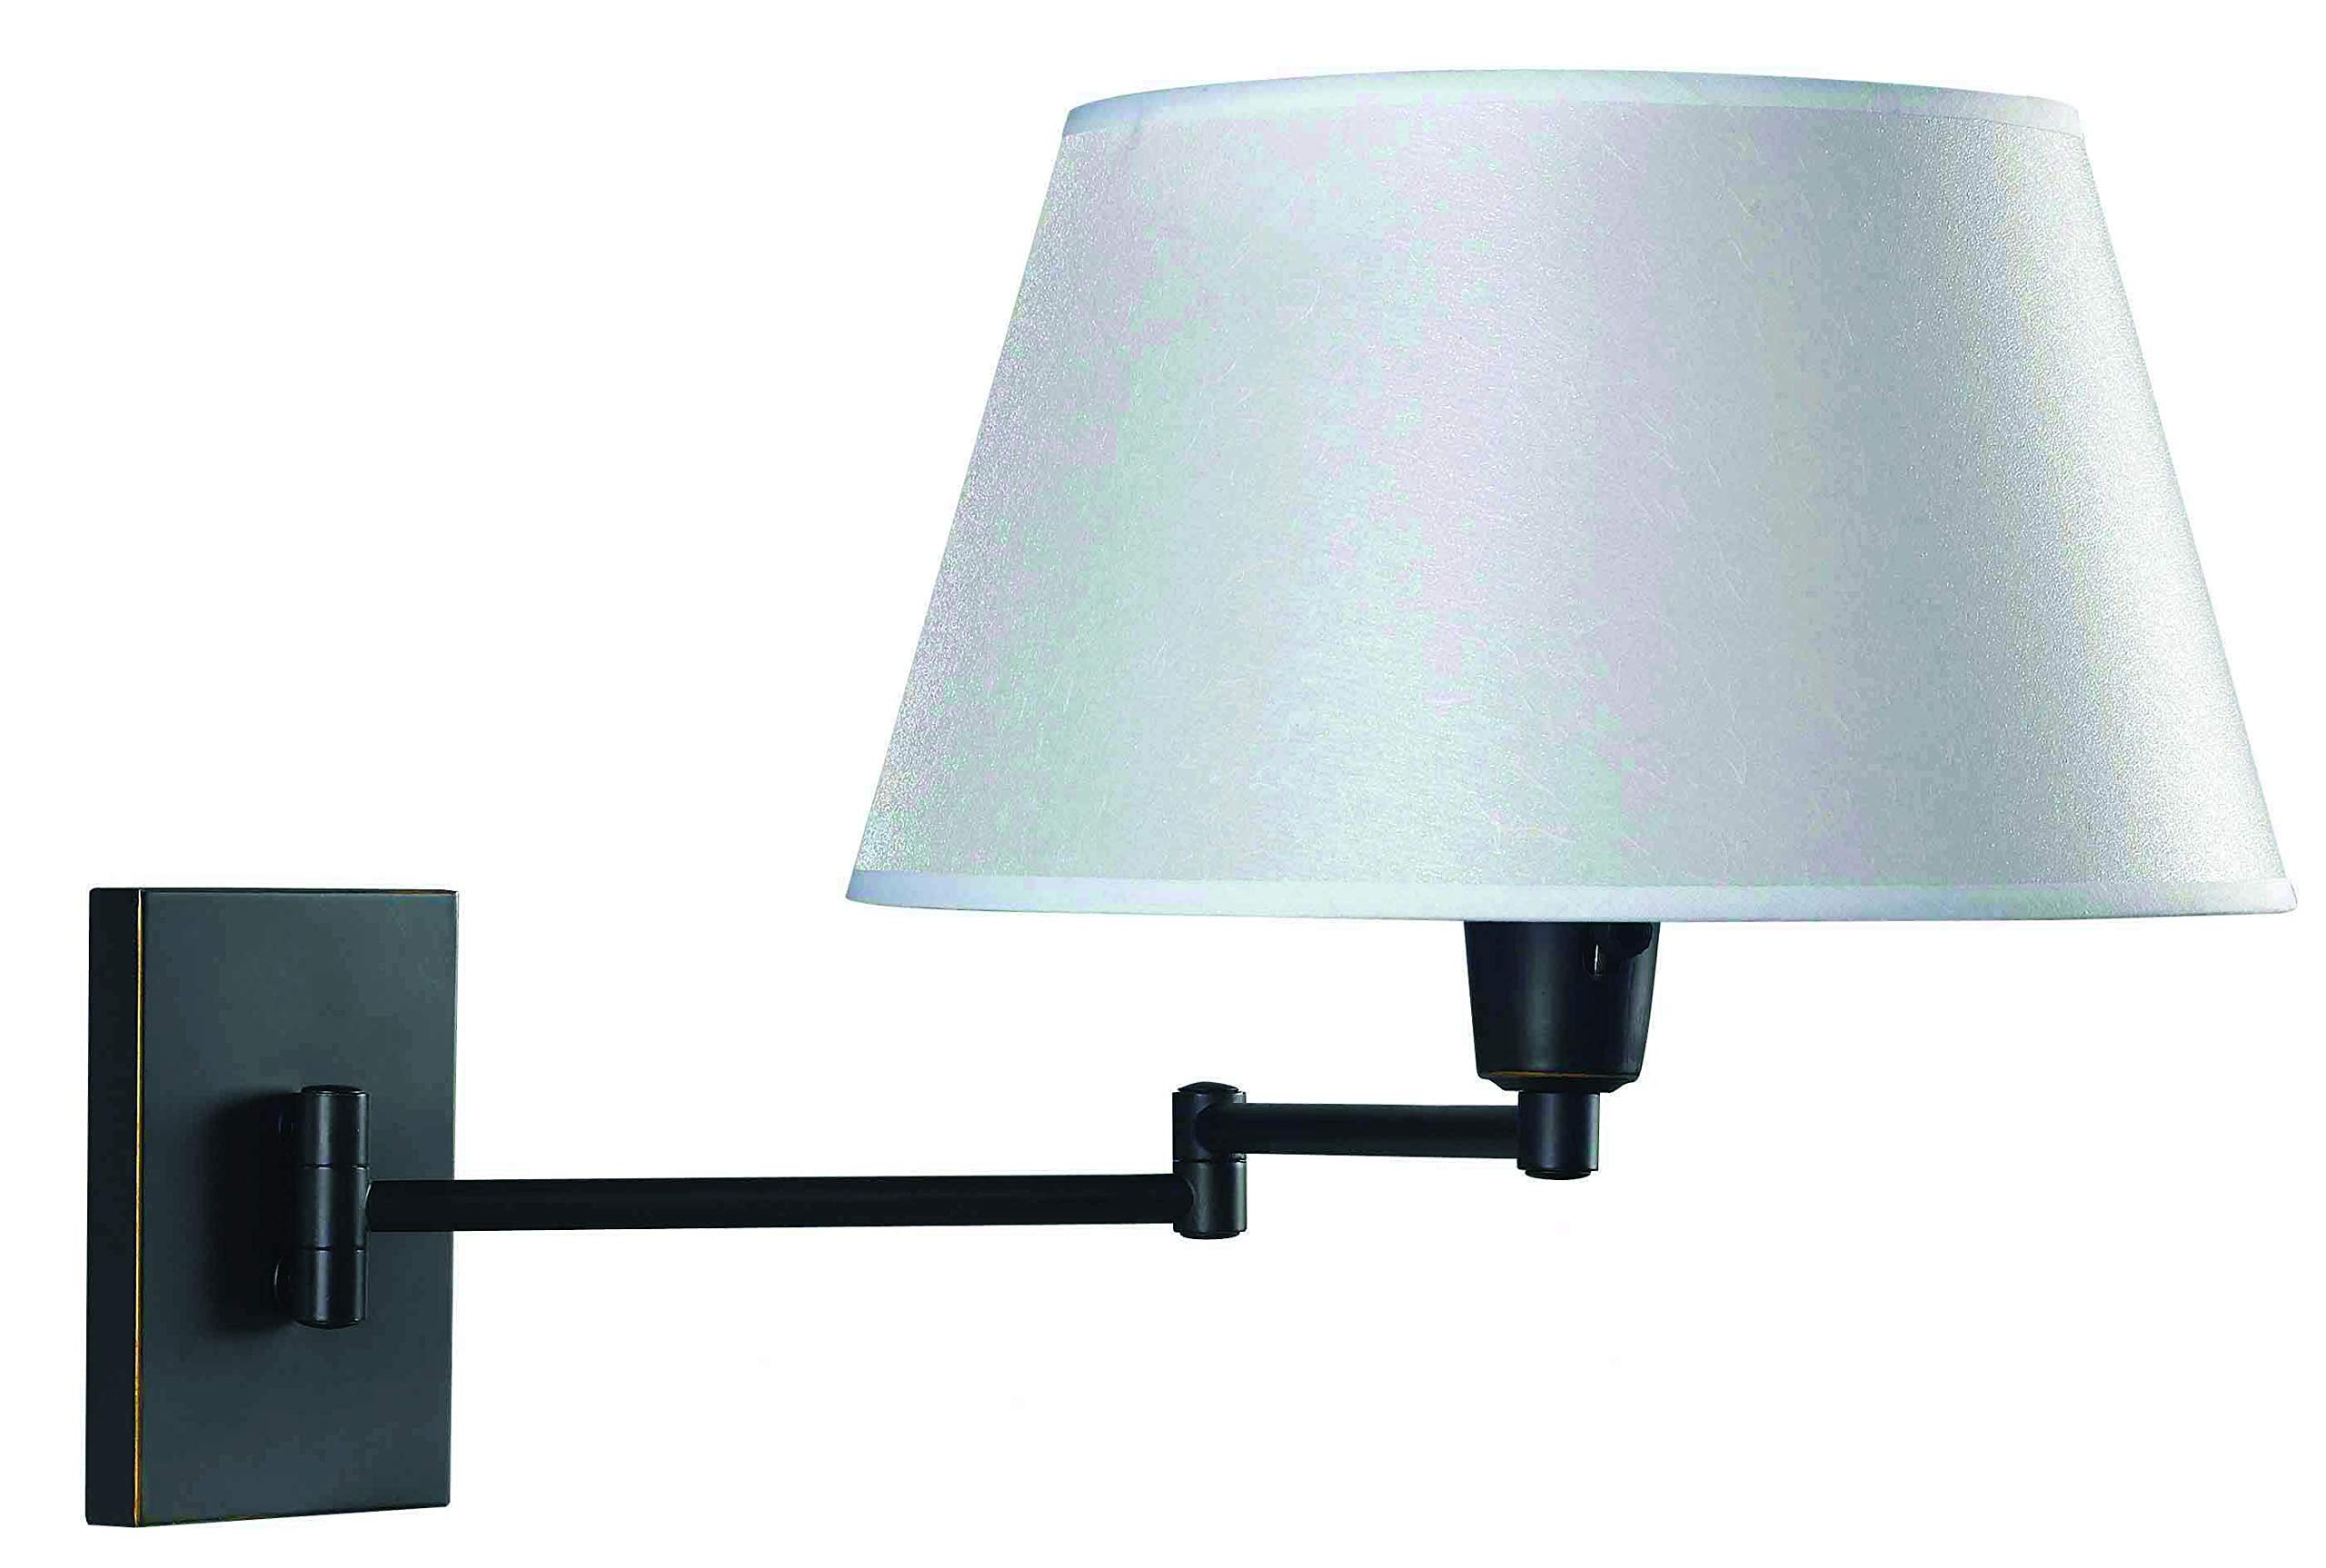 Kenroy Home Swing Arm Wall Lamp – Wall Mounted Plug In, Cord Covers Included, Oil Rubbed Bronze Finish with 13 inch Cream Fabric Shade, 25 inch reach